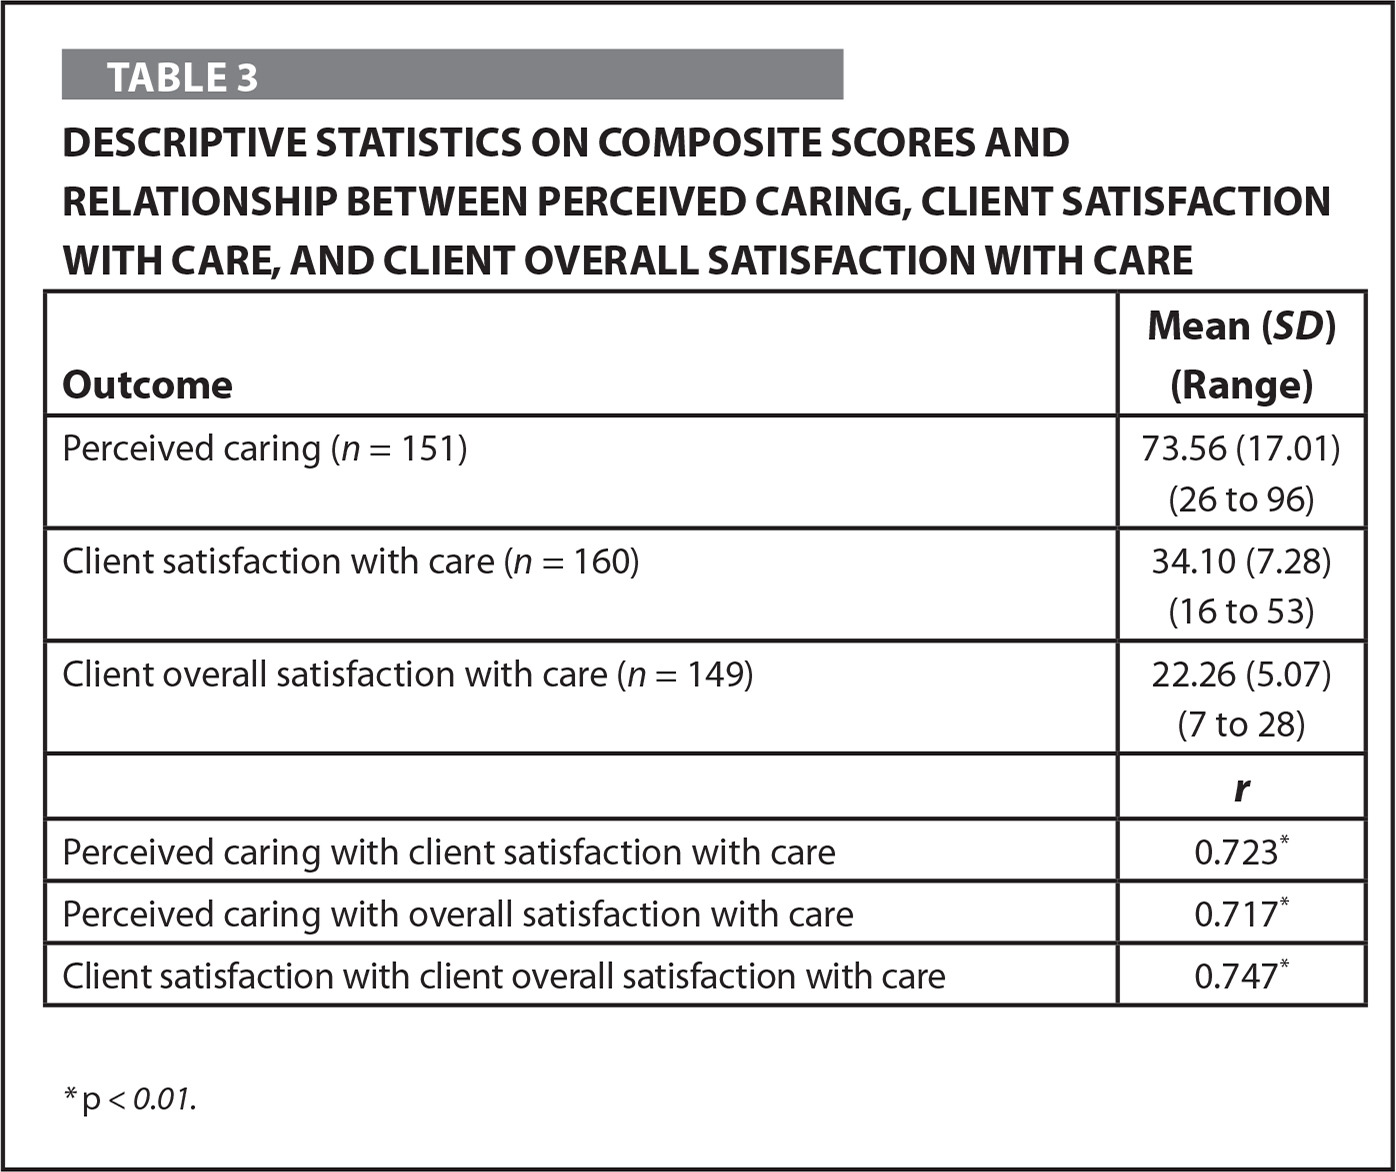 Descriptive Statistics on Composite Scores and Relationship Between Perceived Caring, Client Satisfaction with Care, and Client Overall Satisfaction with Care